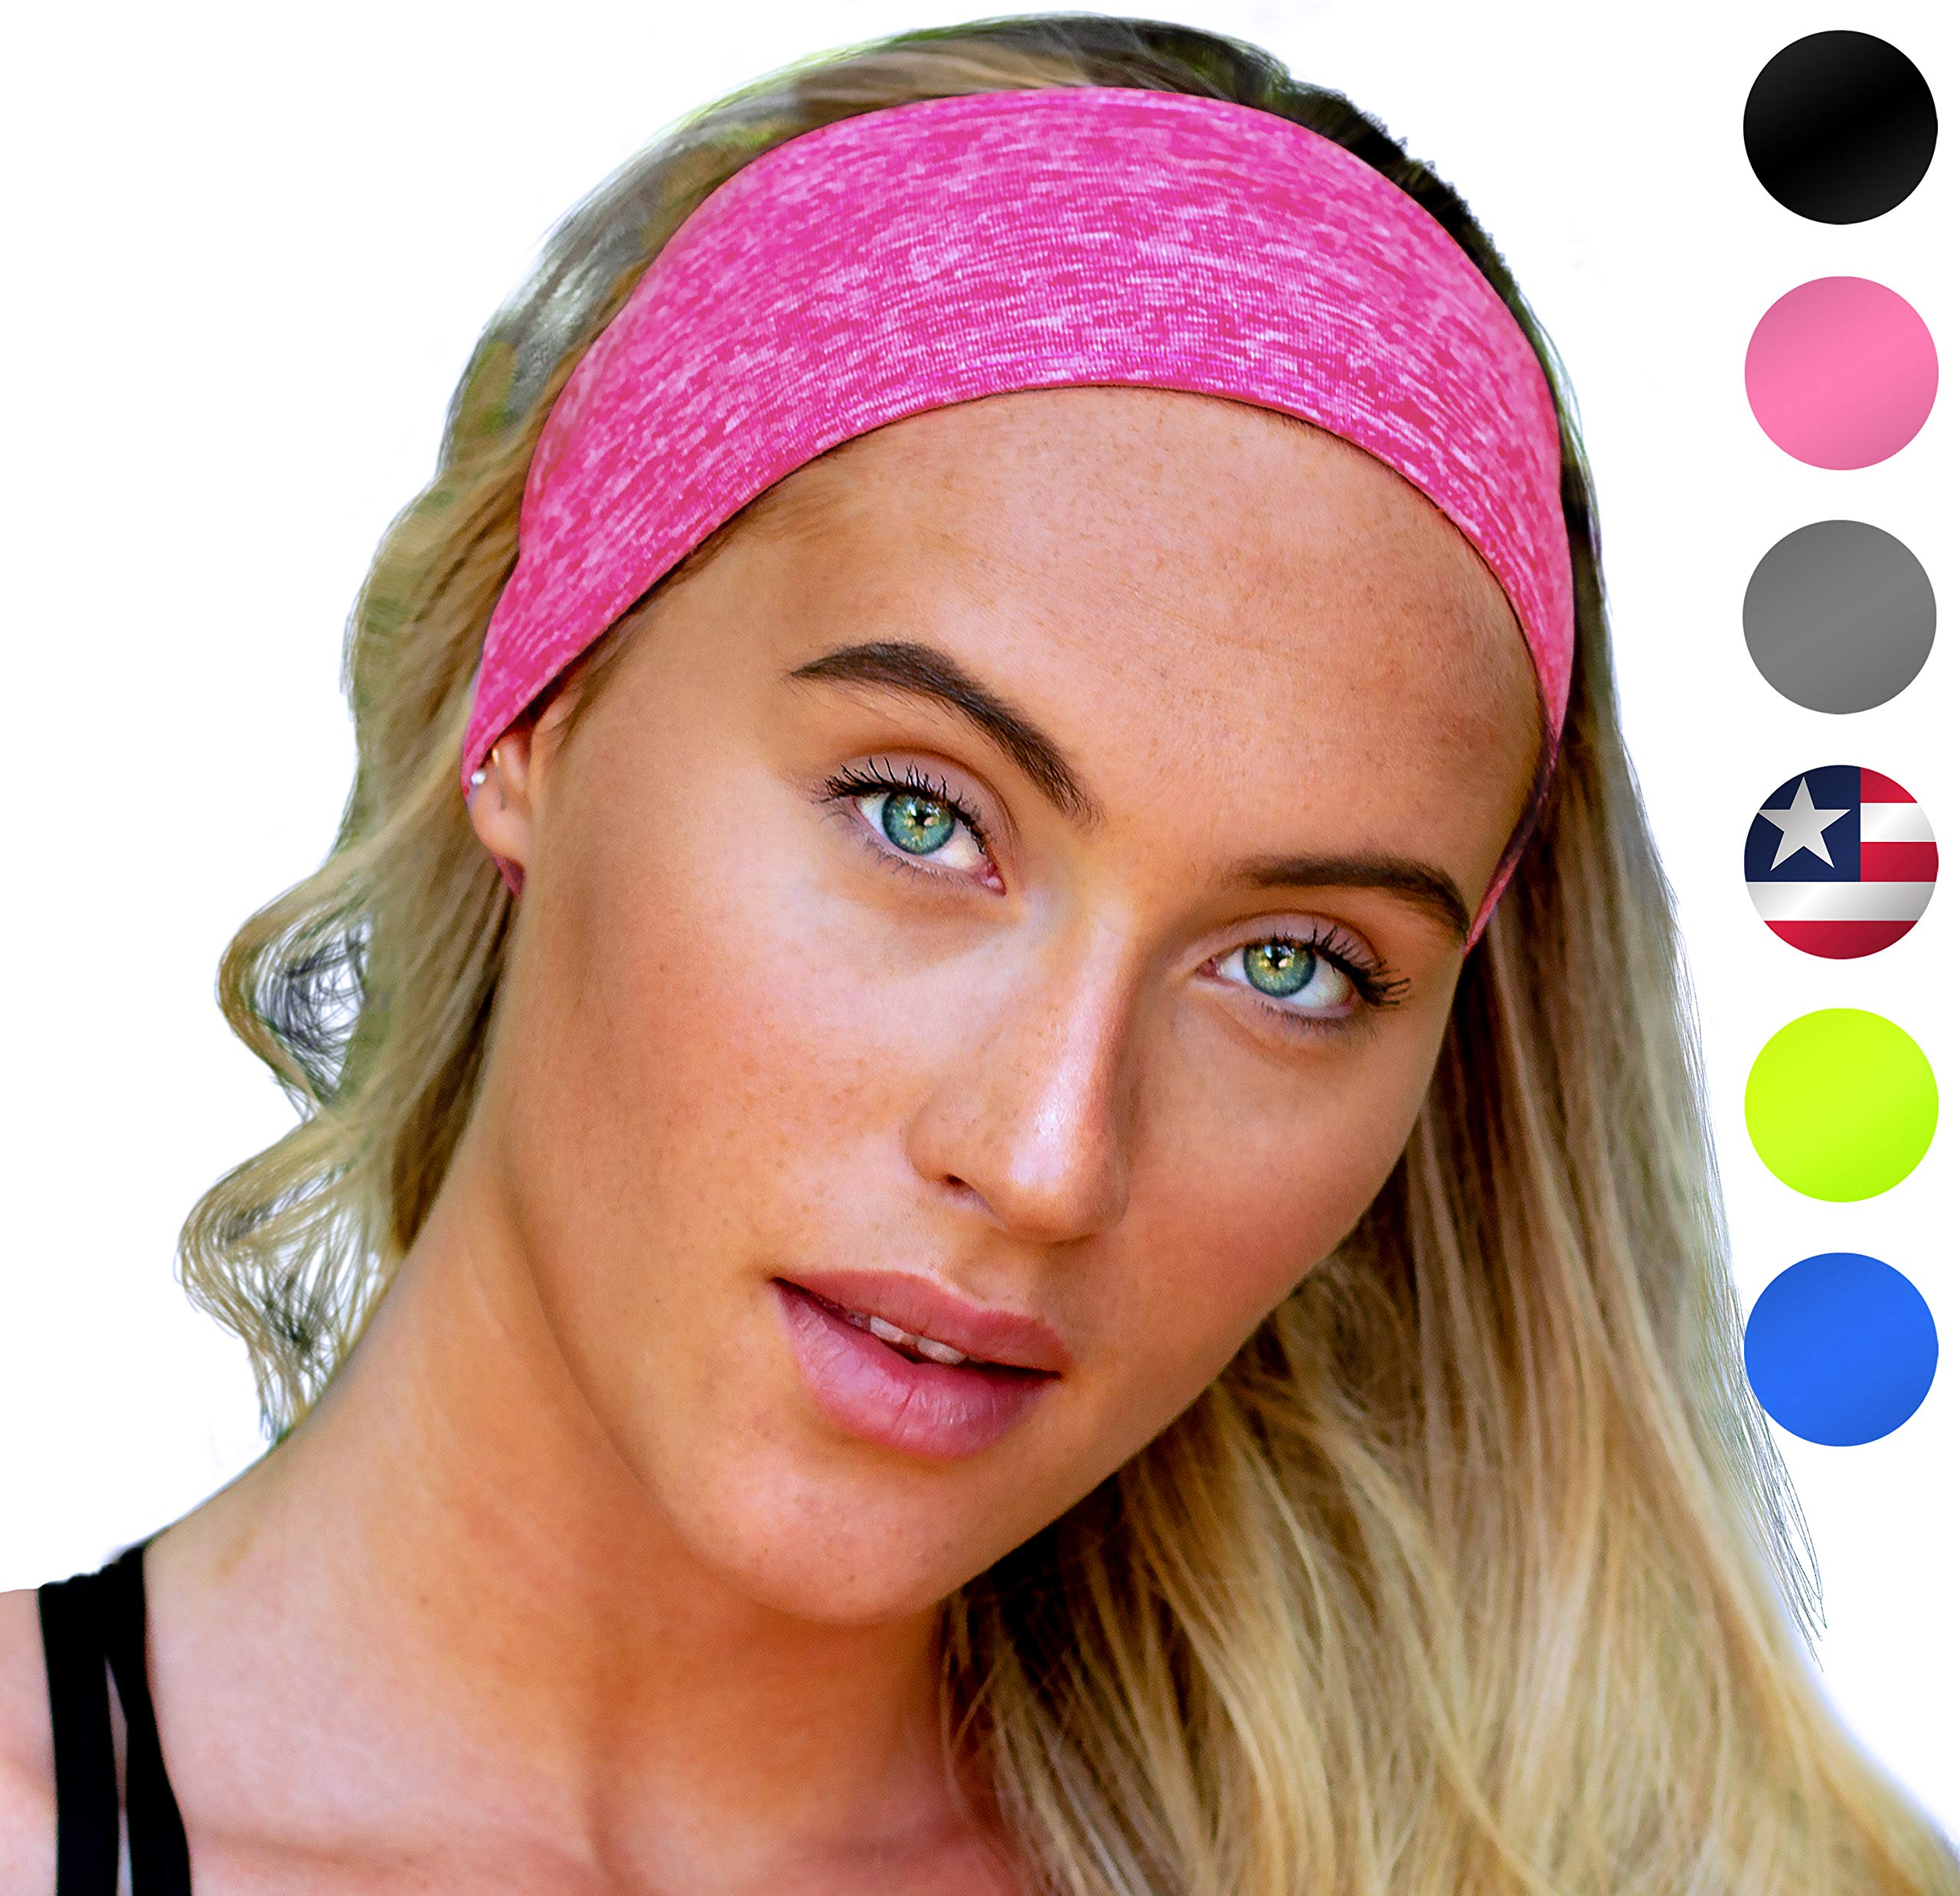 Sports Headband: Unisex Fitness Headbands for Women & Men. Head Band Sweatband for Running, Yoga, Workout Gym Exercise. NO Slip Sport Sweatbands & Sweat Wicking Athletic Head Wrap Bands Fit Over Hair by E Tronic Edge